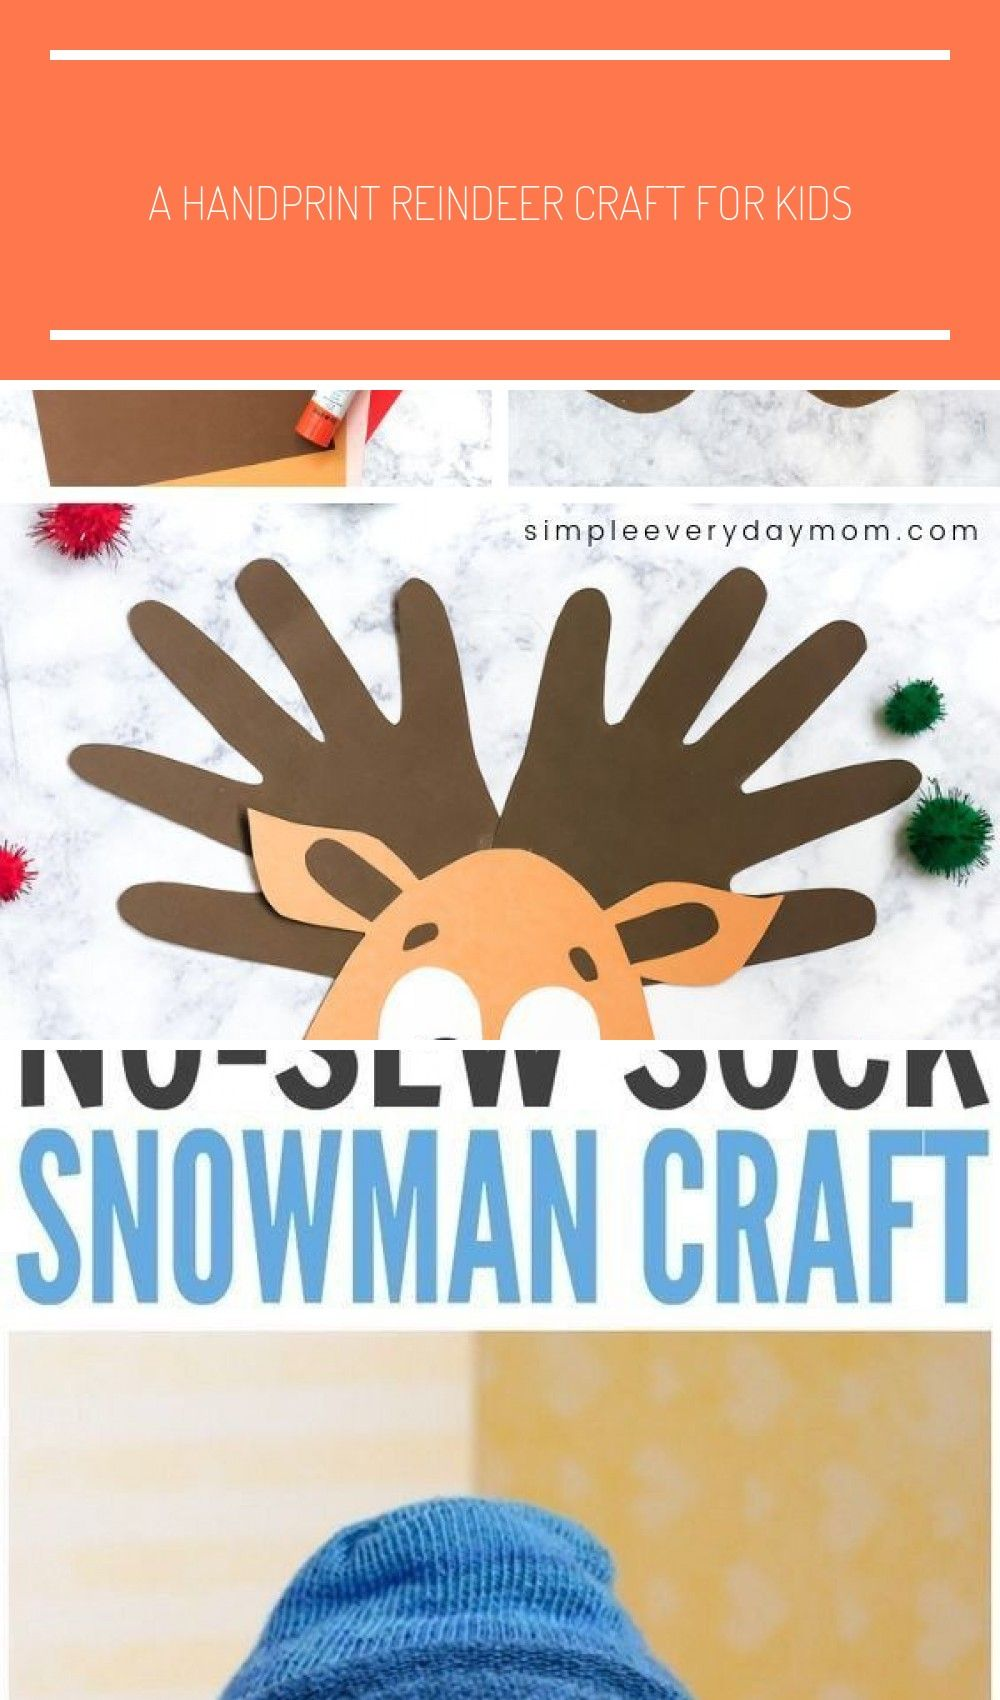 This handprint reindeer is a fun DIY Christmas craft for kids to make. It's easy enough for toddler